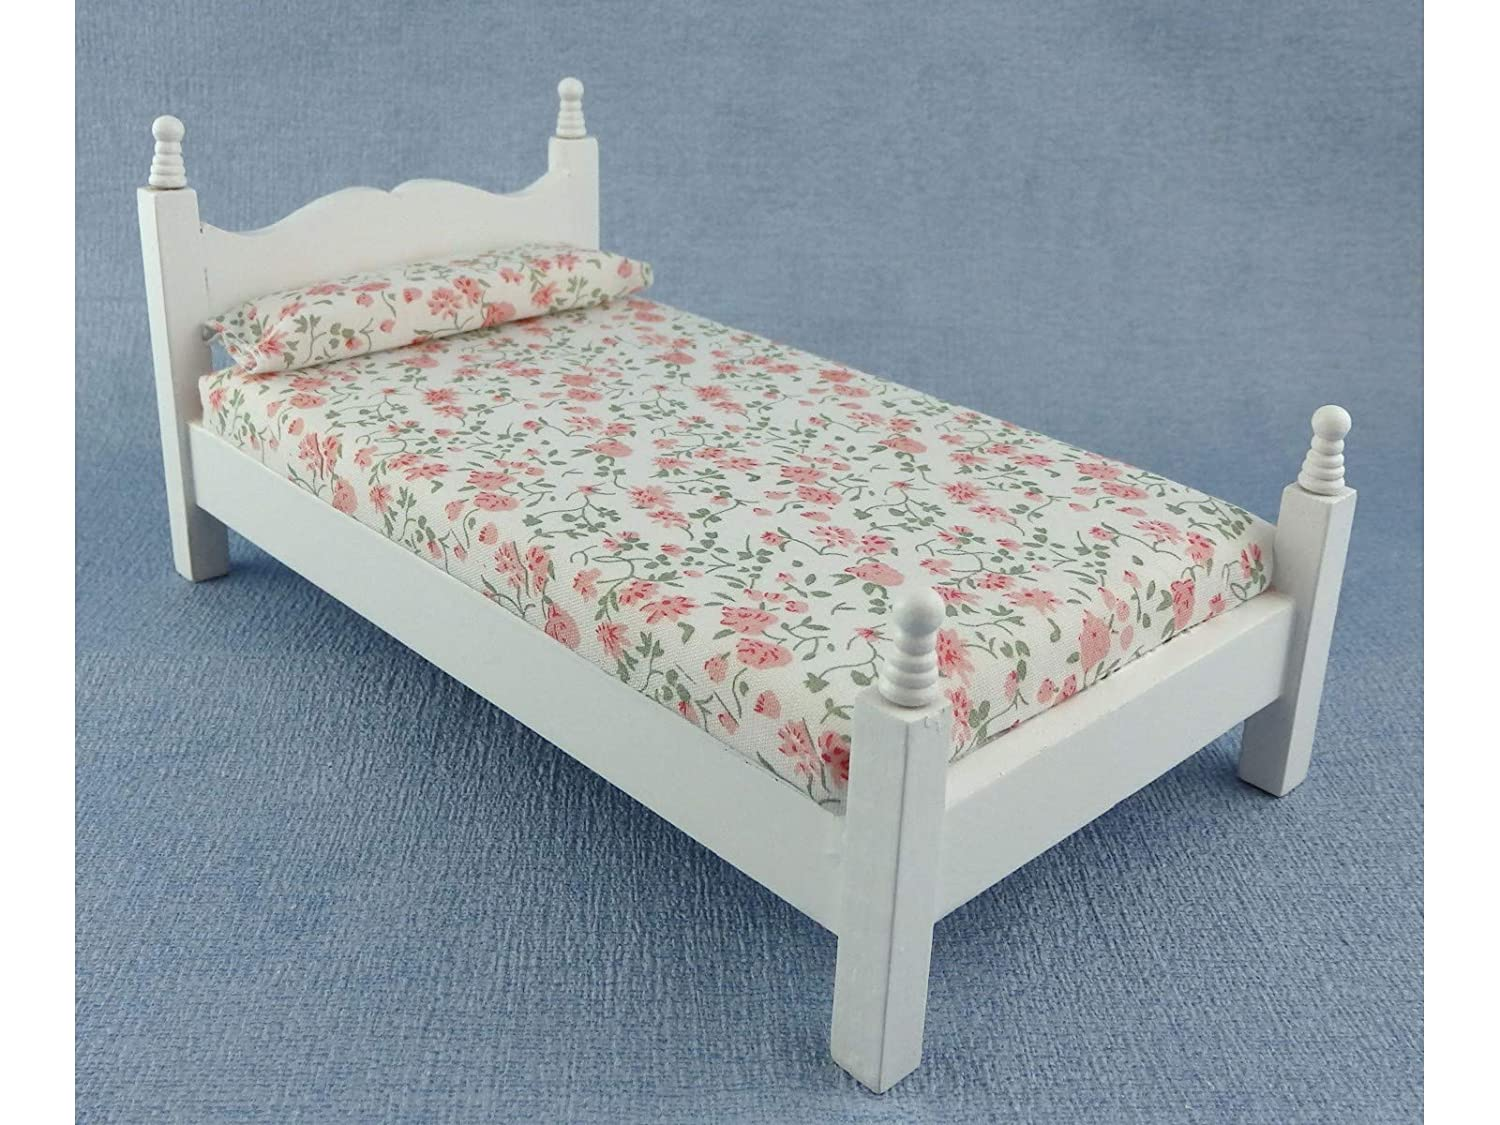 【楽ギフ_のし宛書】 Dolls House White Miniature Bedroom Scale Furniture 1:12 White Wooden Single Bed 1:12 Scale B01BHUNDIM, アンプルール VERY店:589225f3 --- diceanalytics.pk